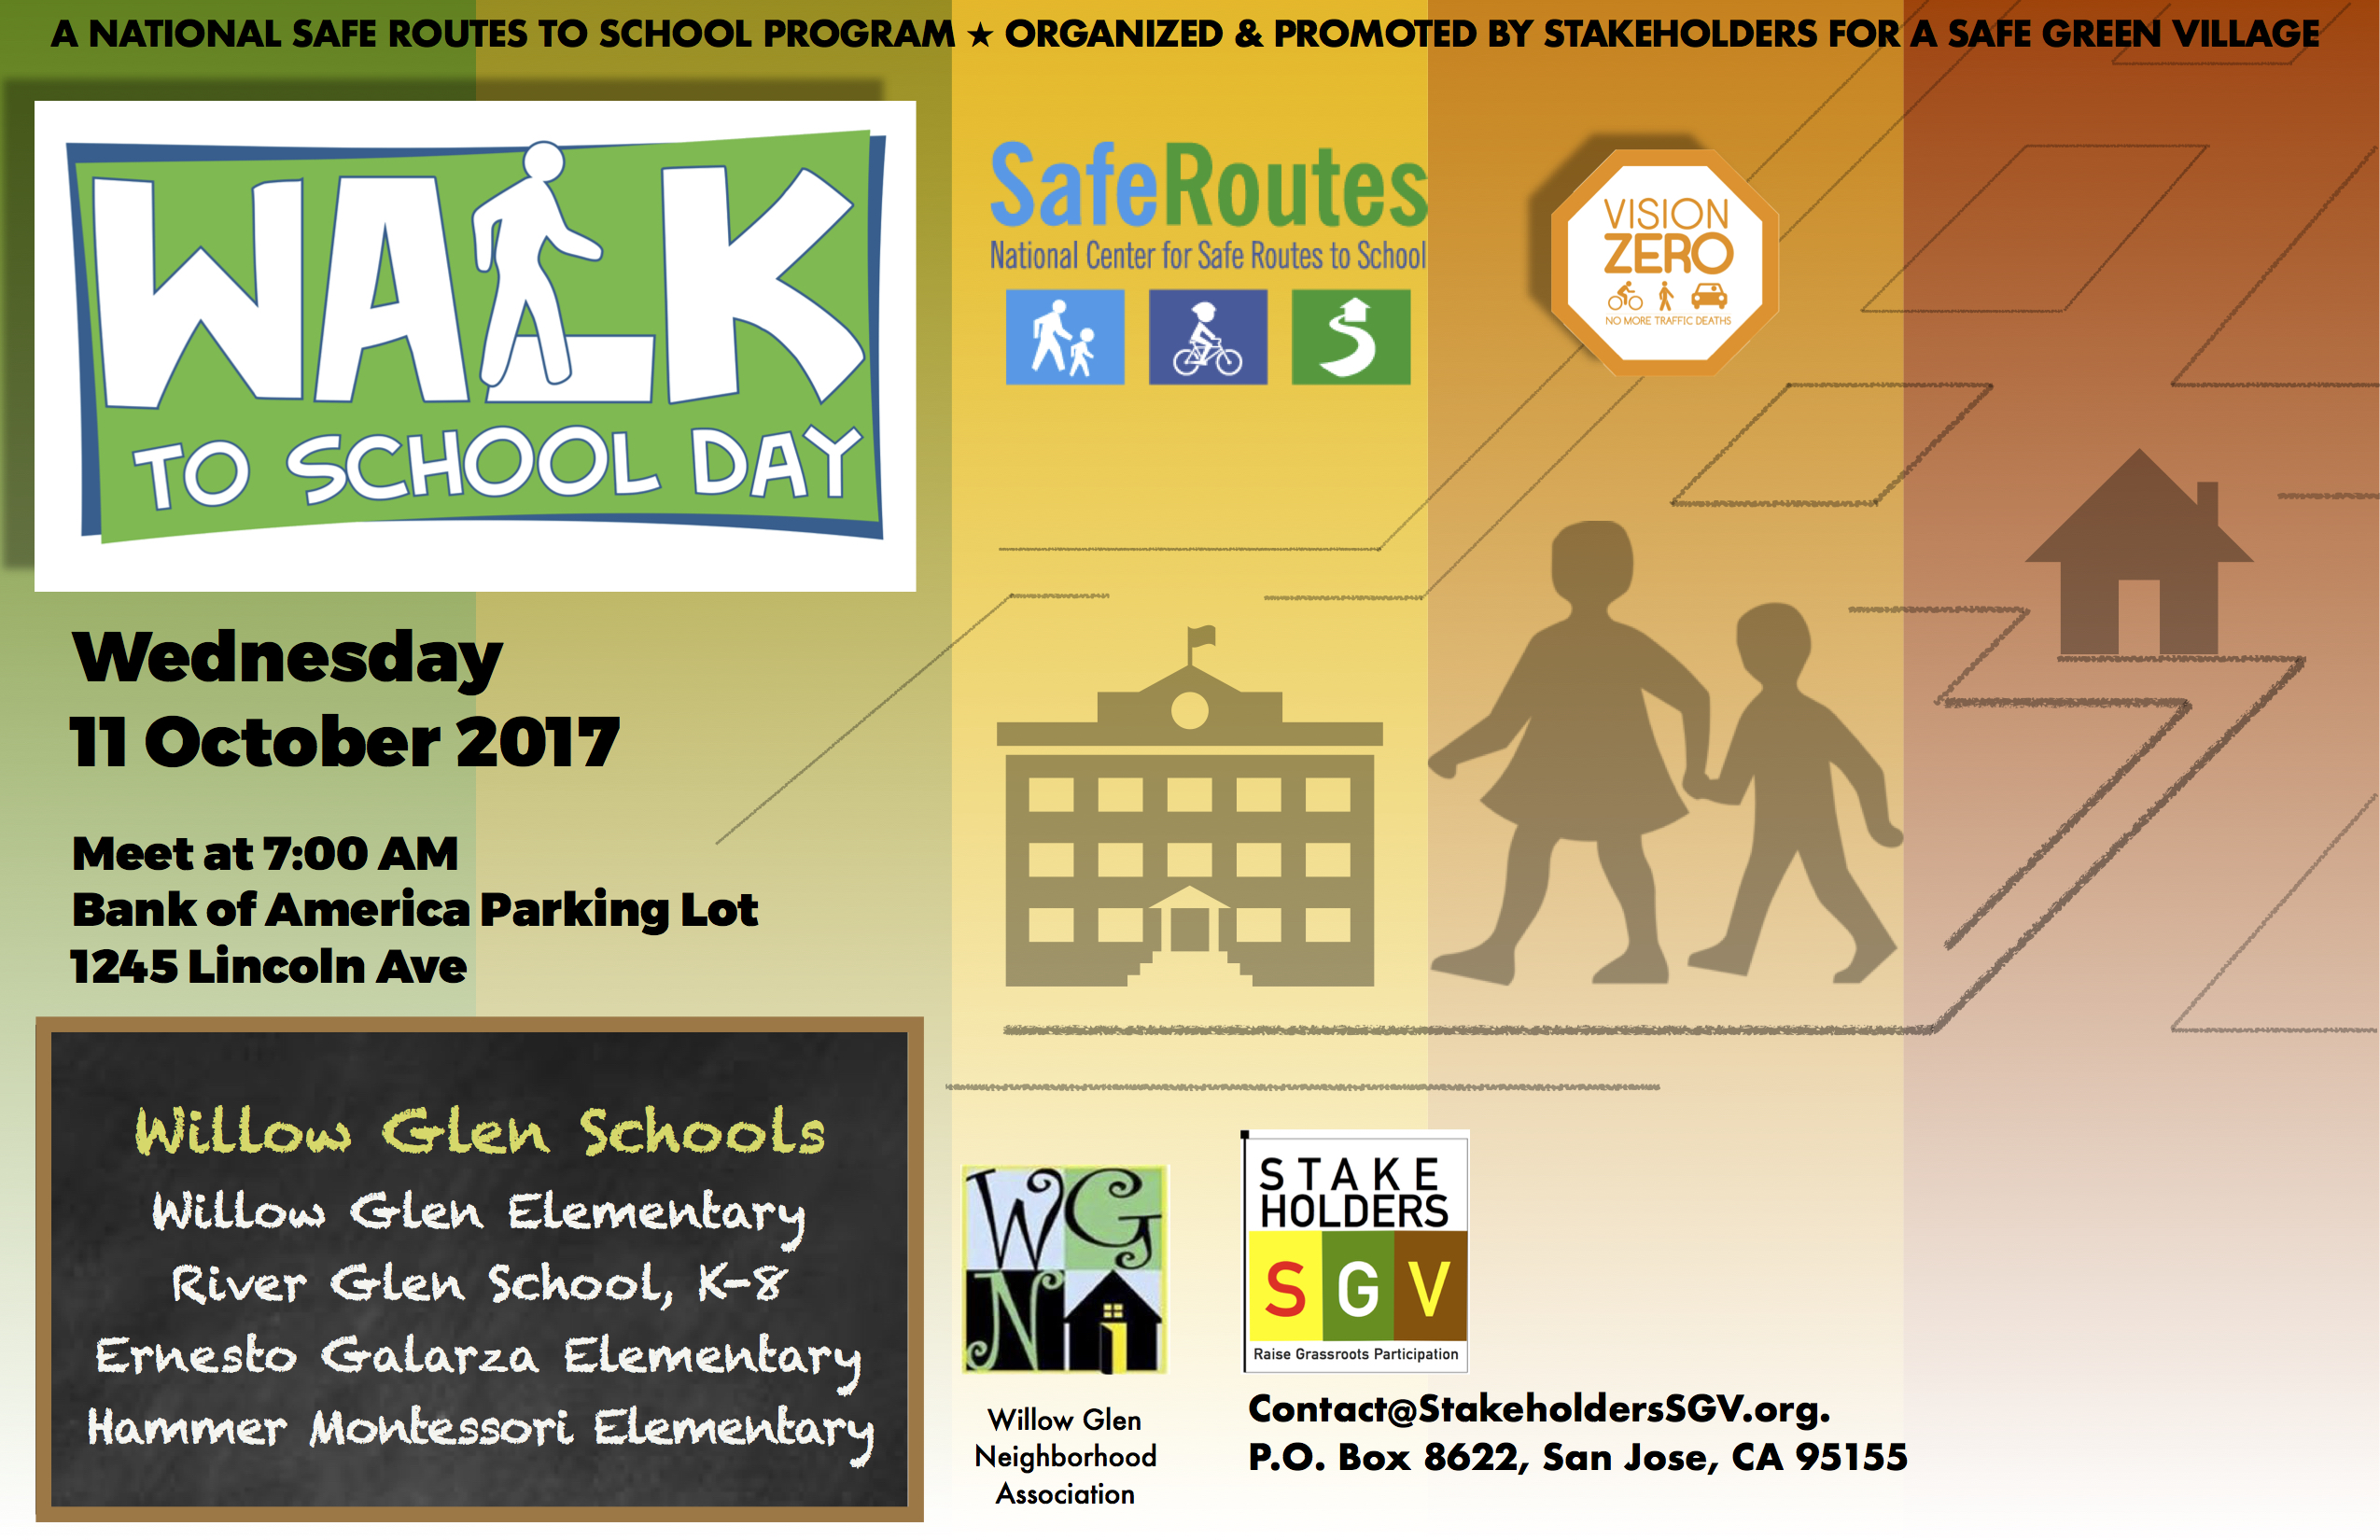 Walk_to_School_2017_Simple_Venue.jpg